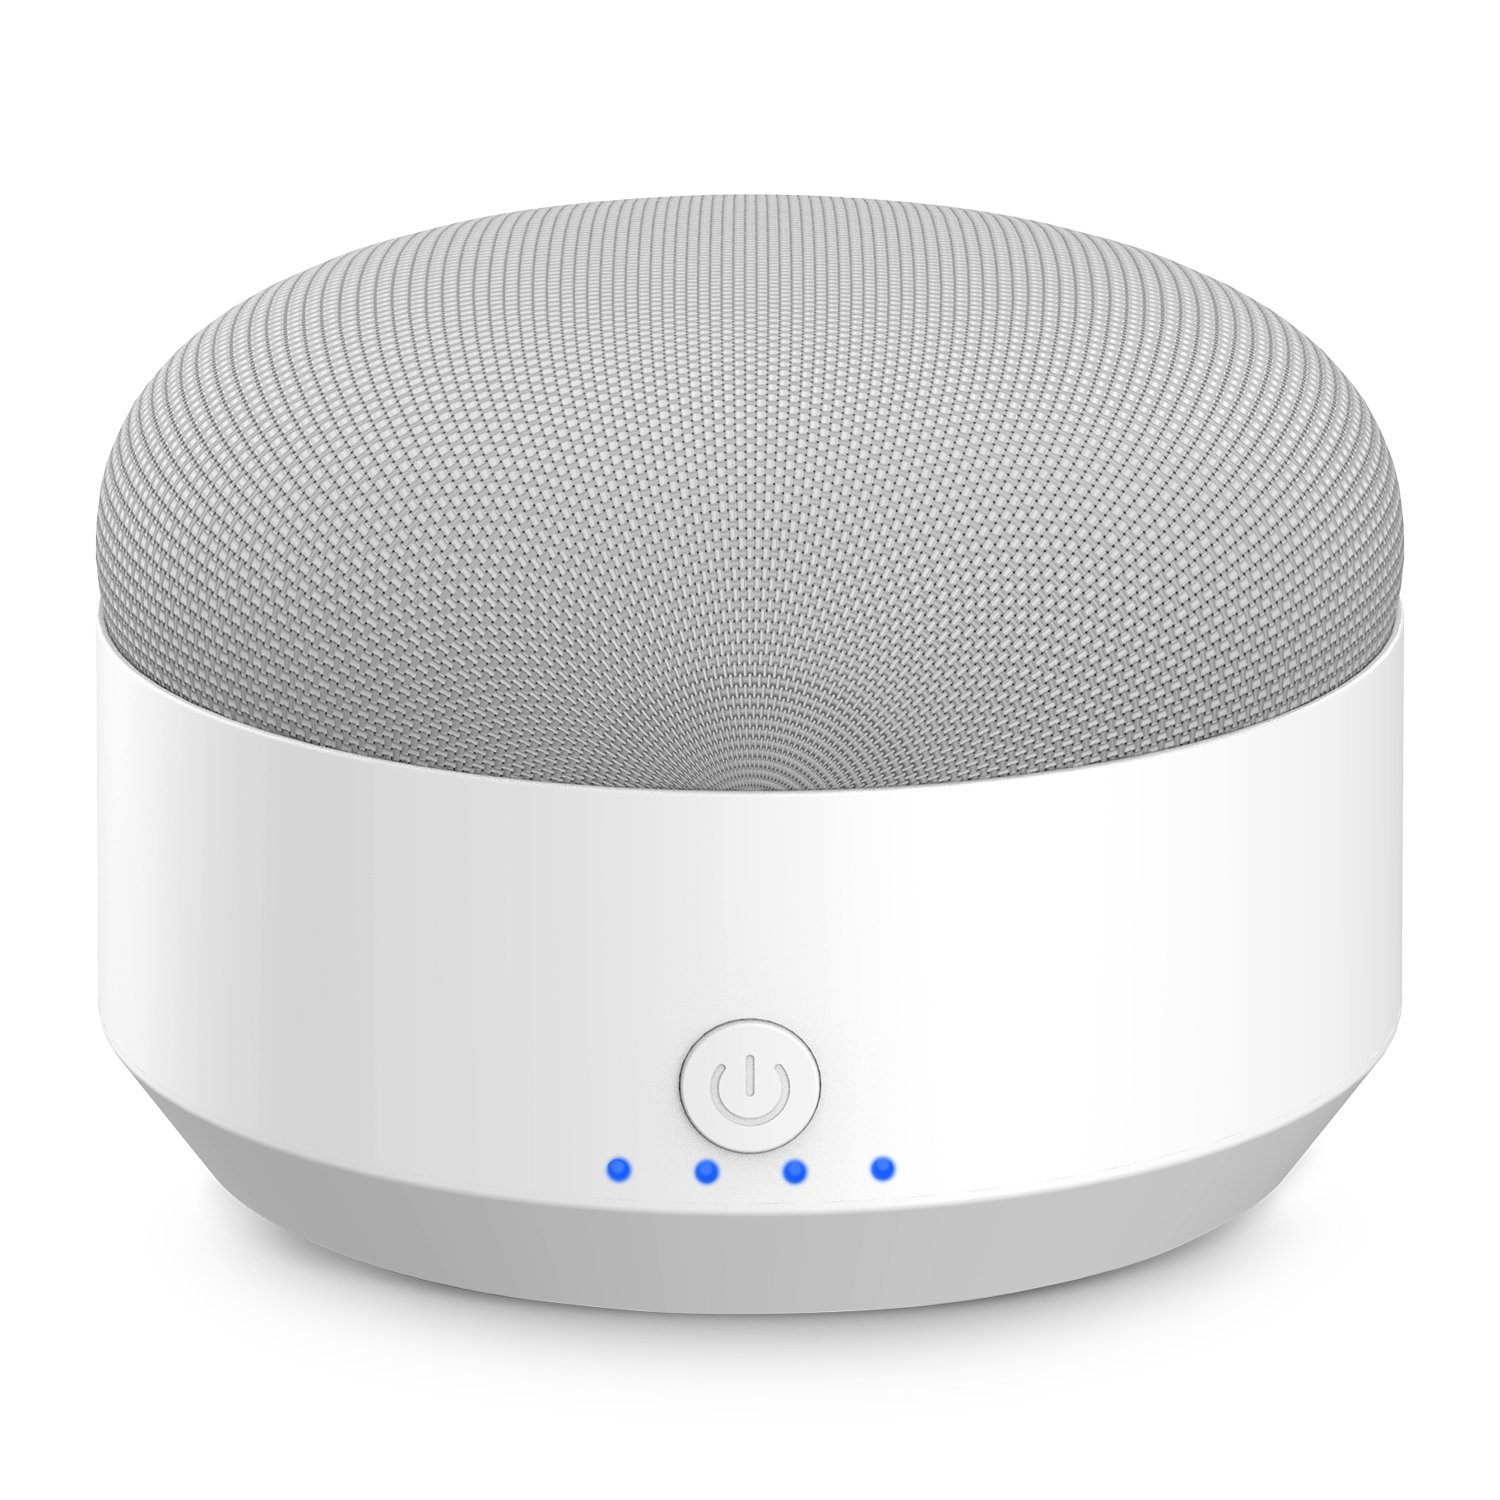 Myriann Portable Rechargeable Battery Base,5200mAh Anti-Slip Rubber Pads&Magnetic Base External Battery Power Bank For Google Home Mini,Charger(White)